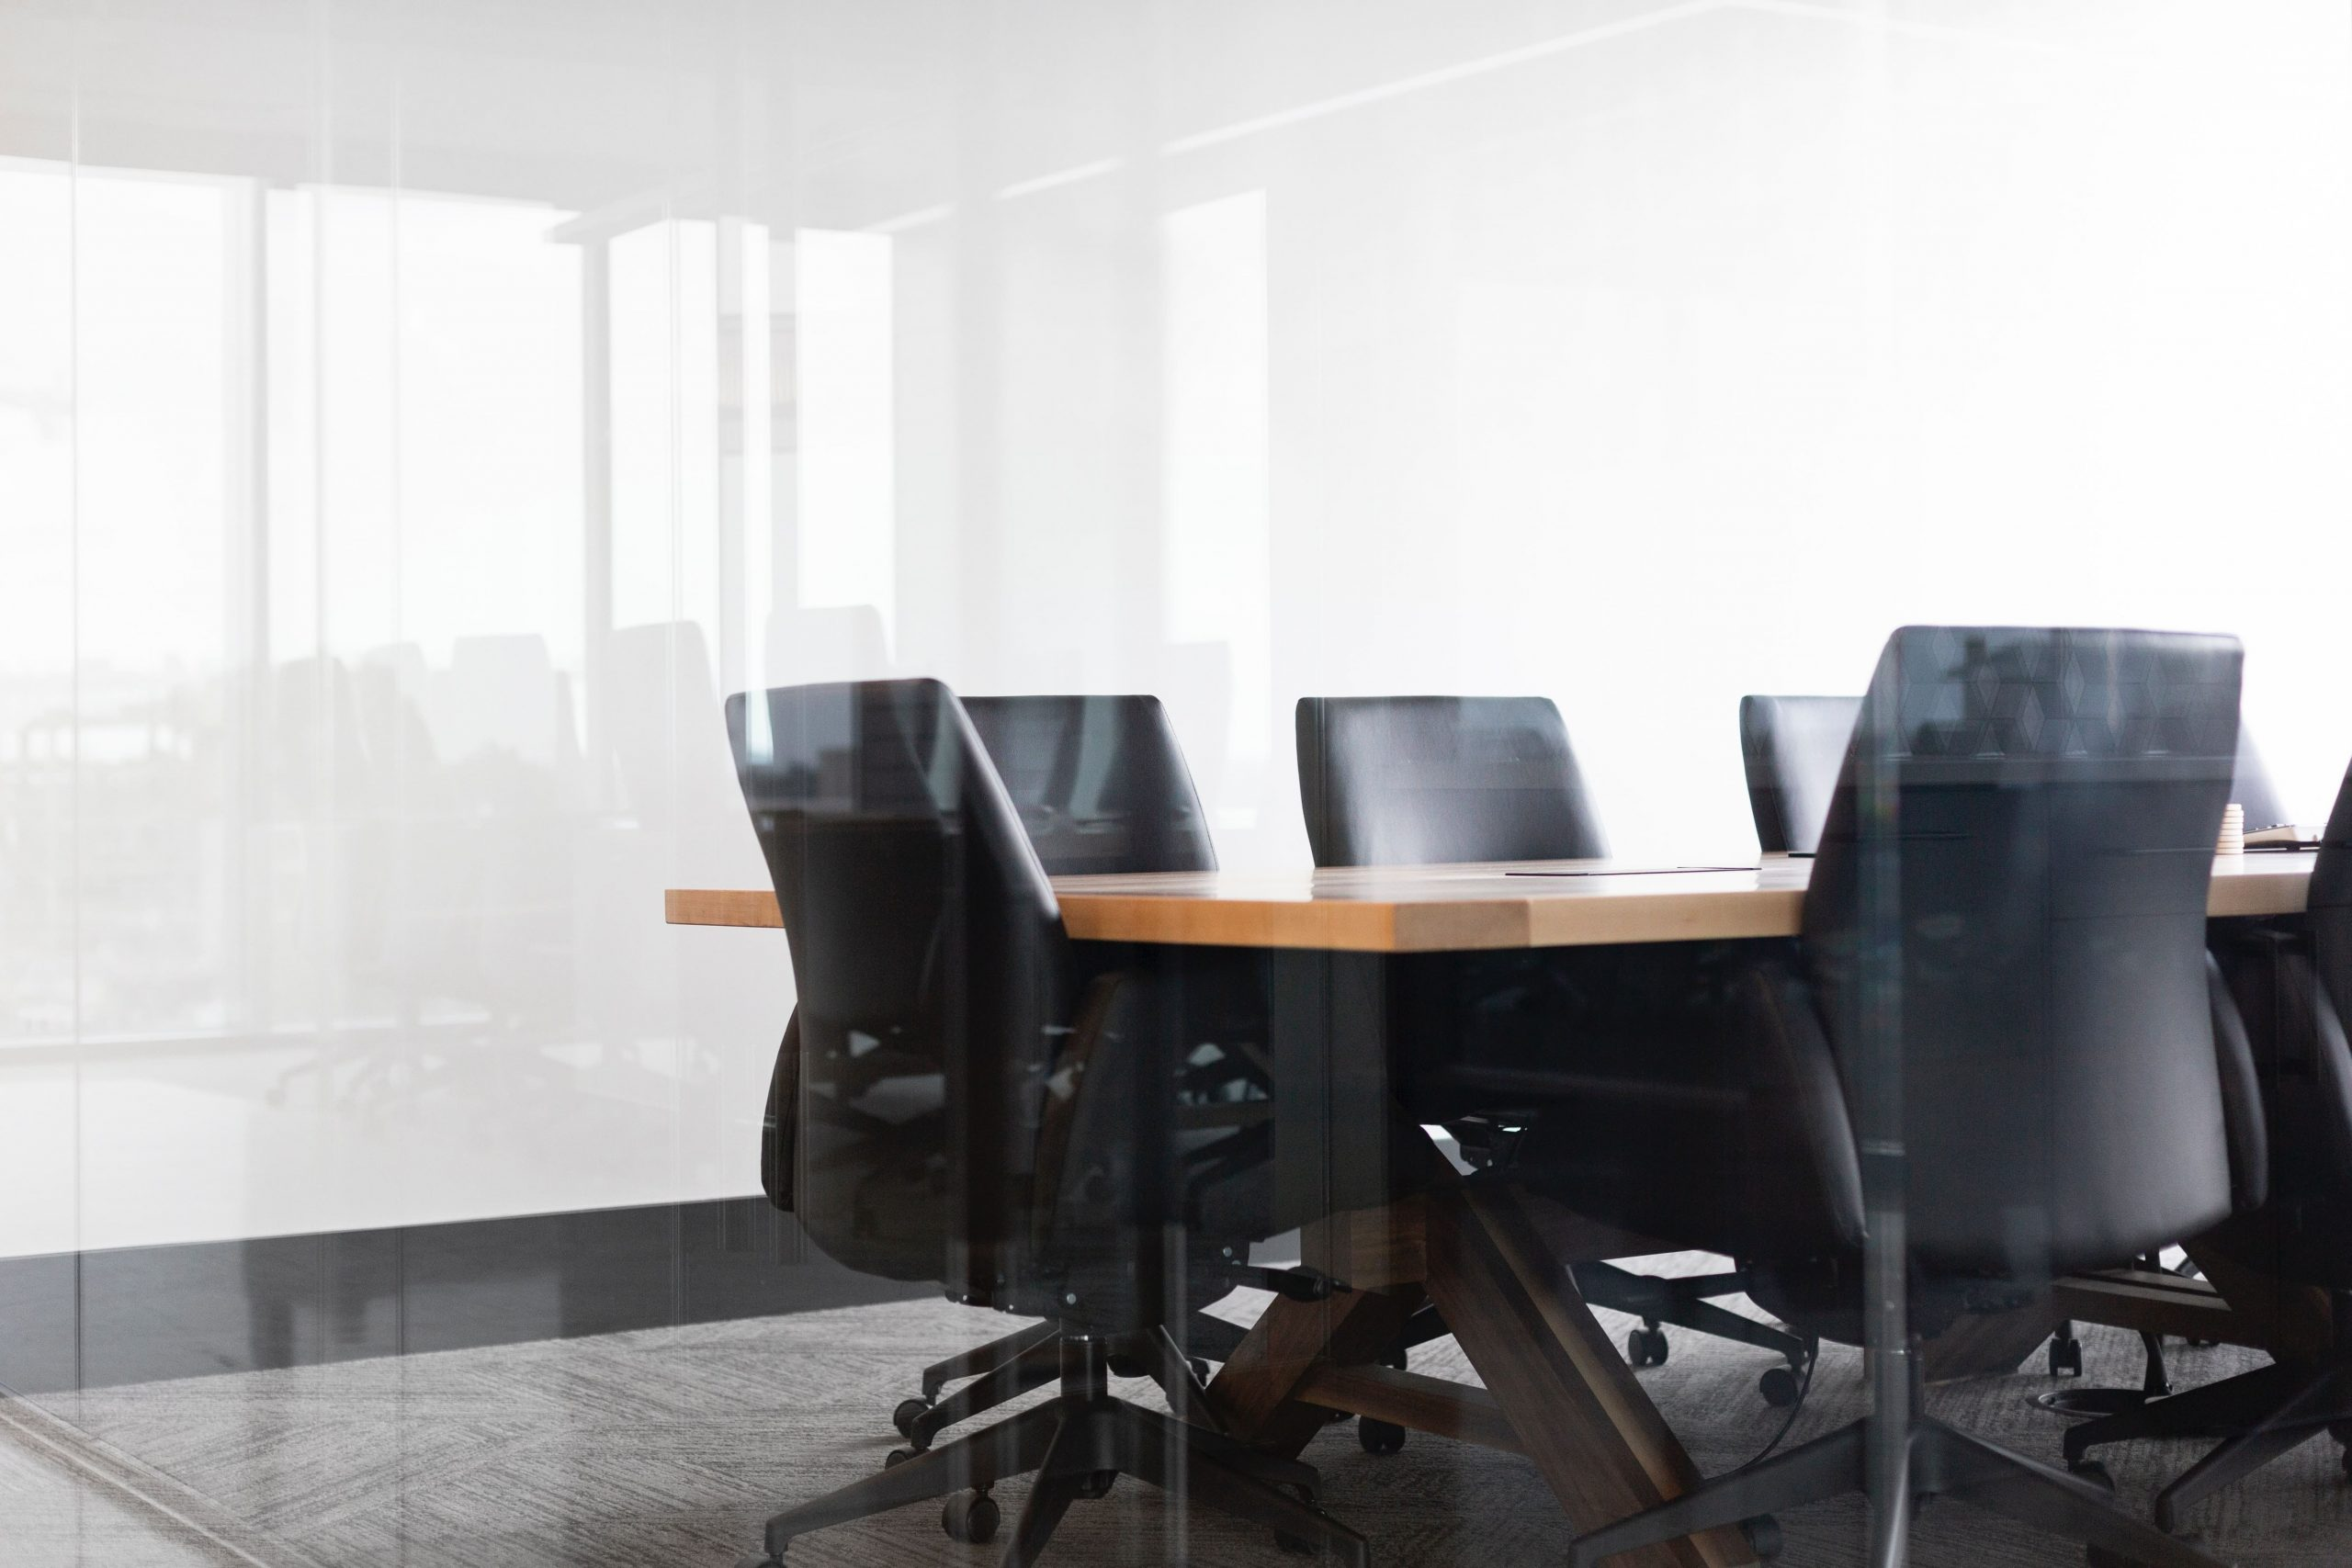 Tips for keeping a shared office space clean